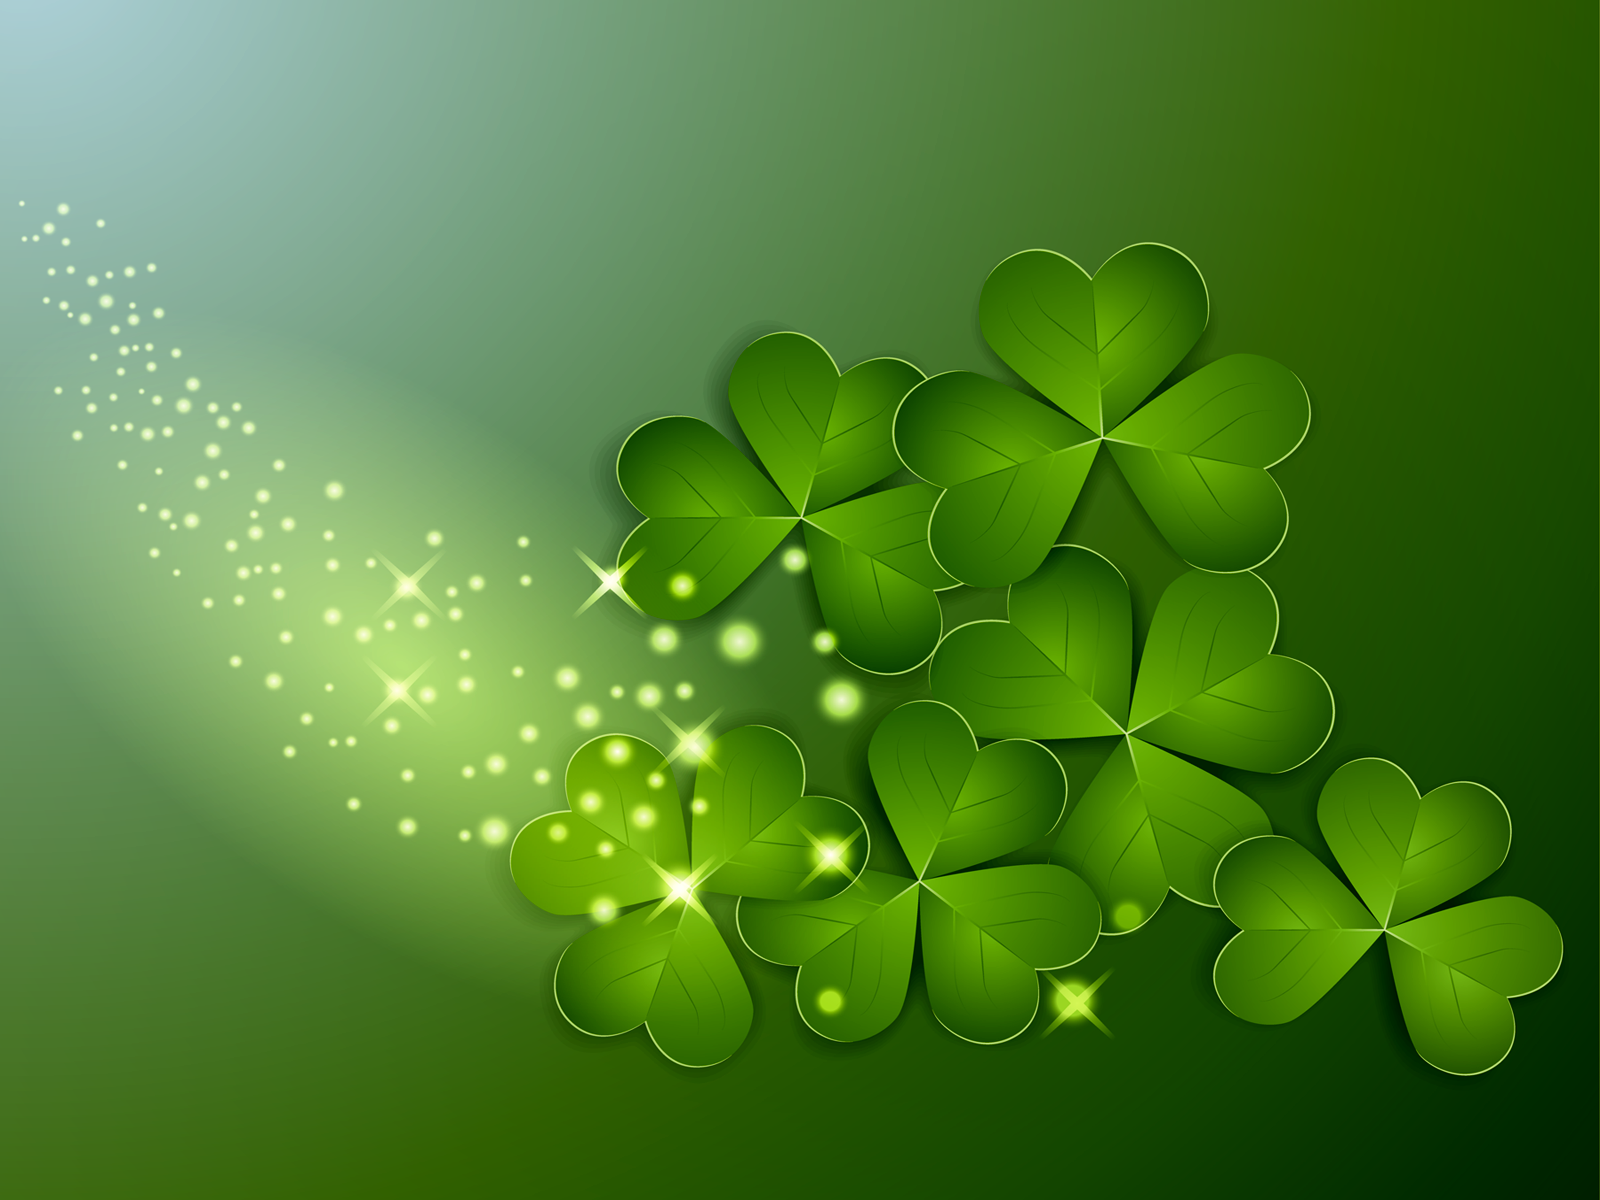 1600x1200 15 lucky Android wallpapers for St. Patrick's Day